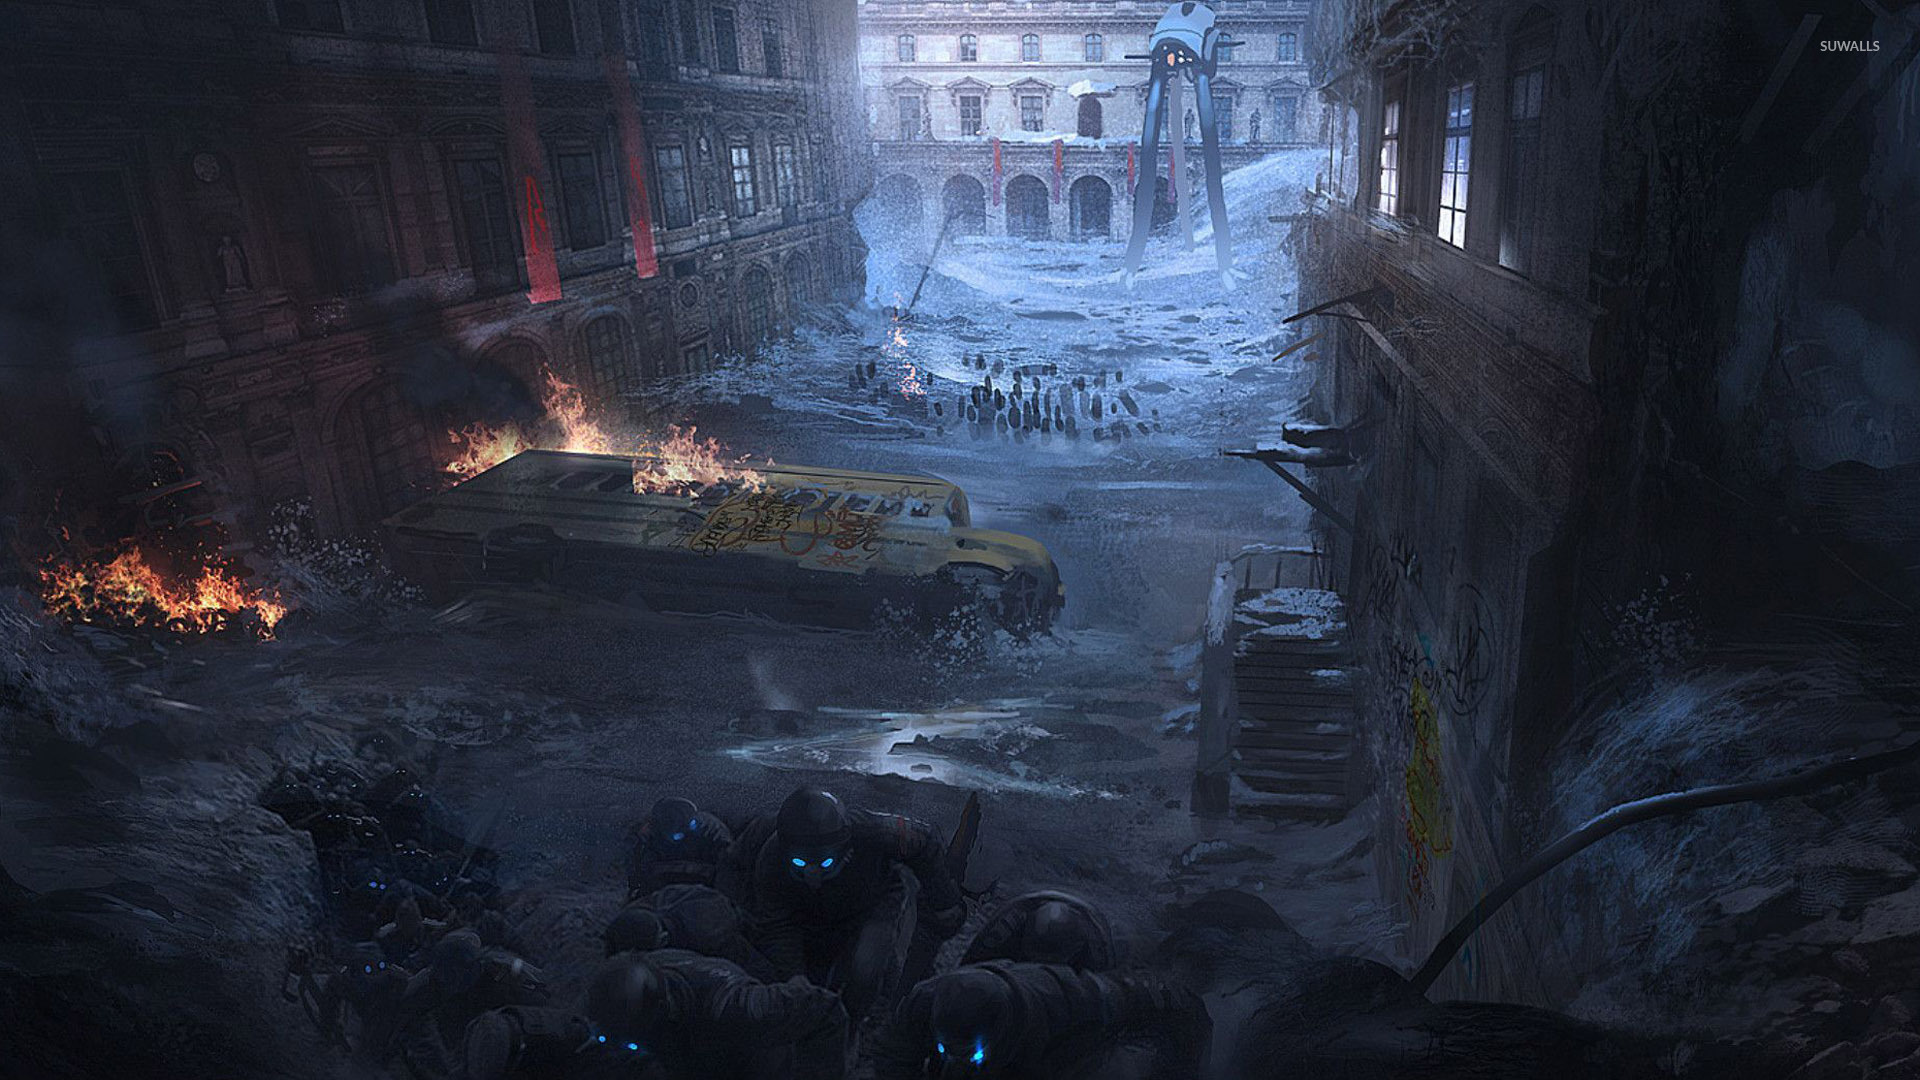 Post Apocalyptic Scenery Wallpaper Fantasy Wallpapers 27374